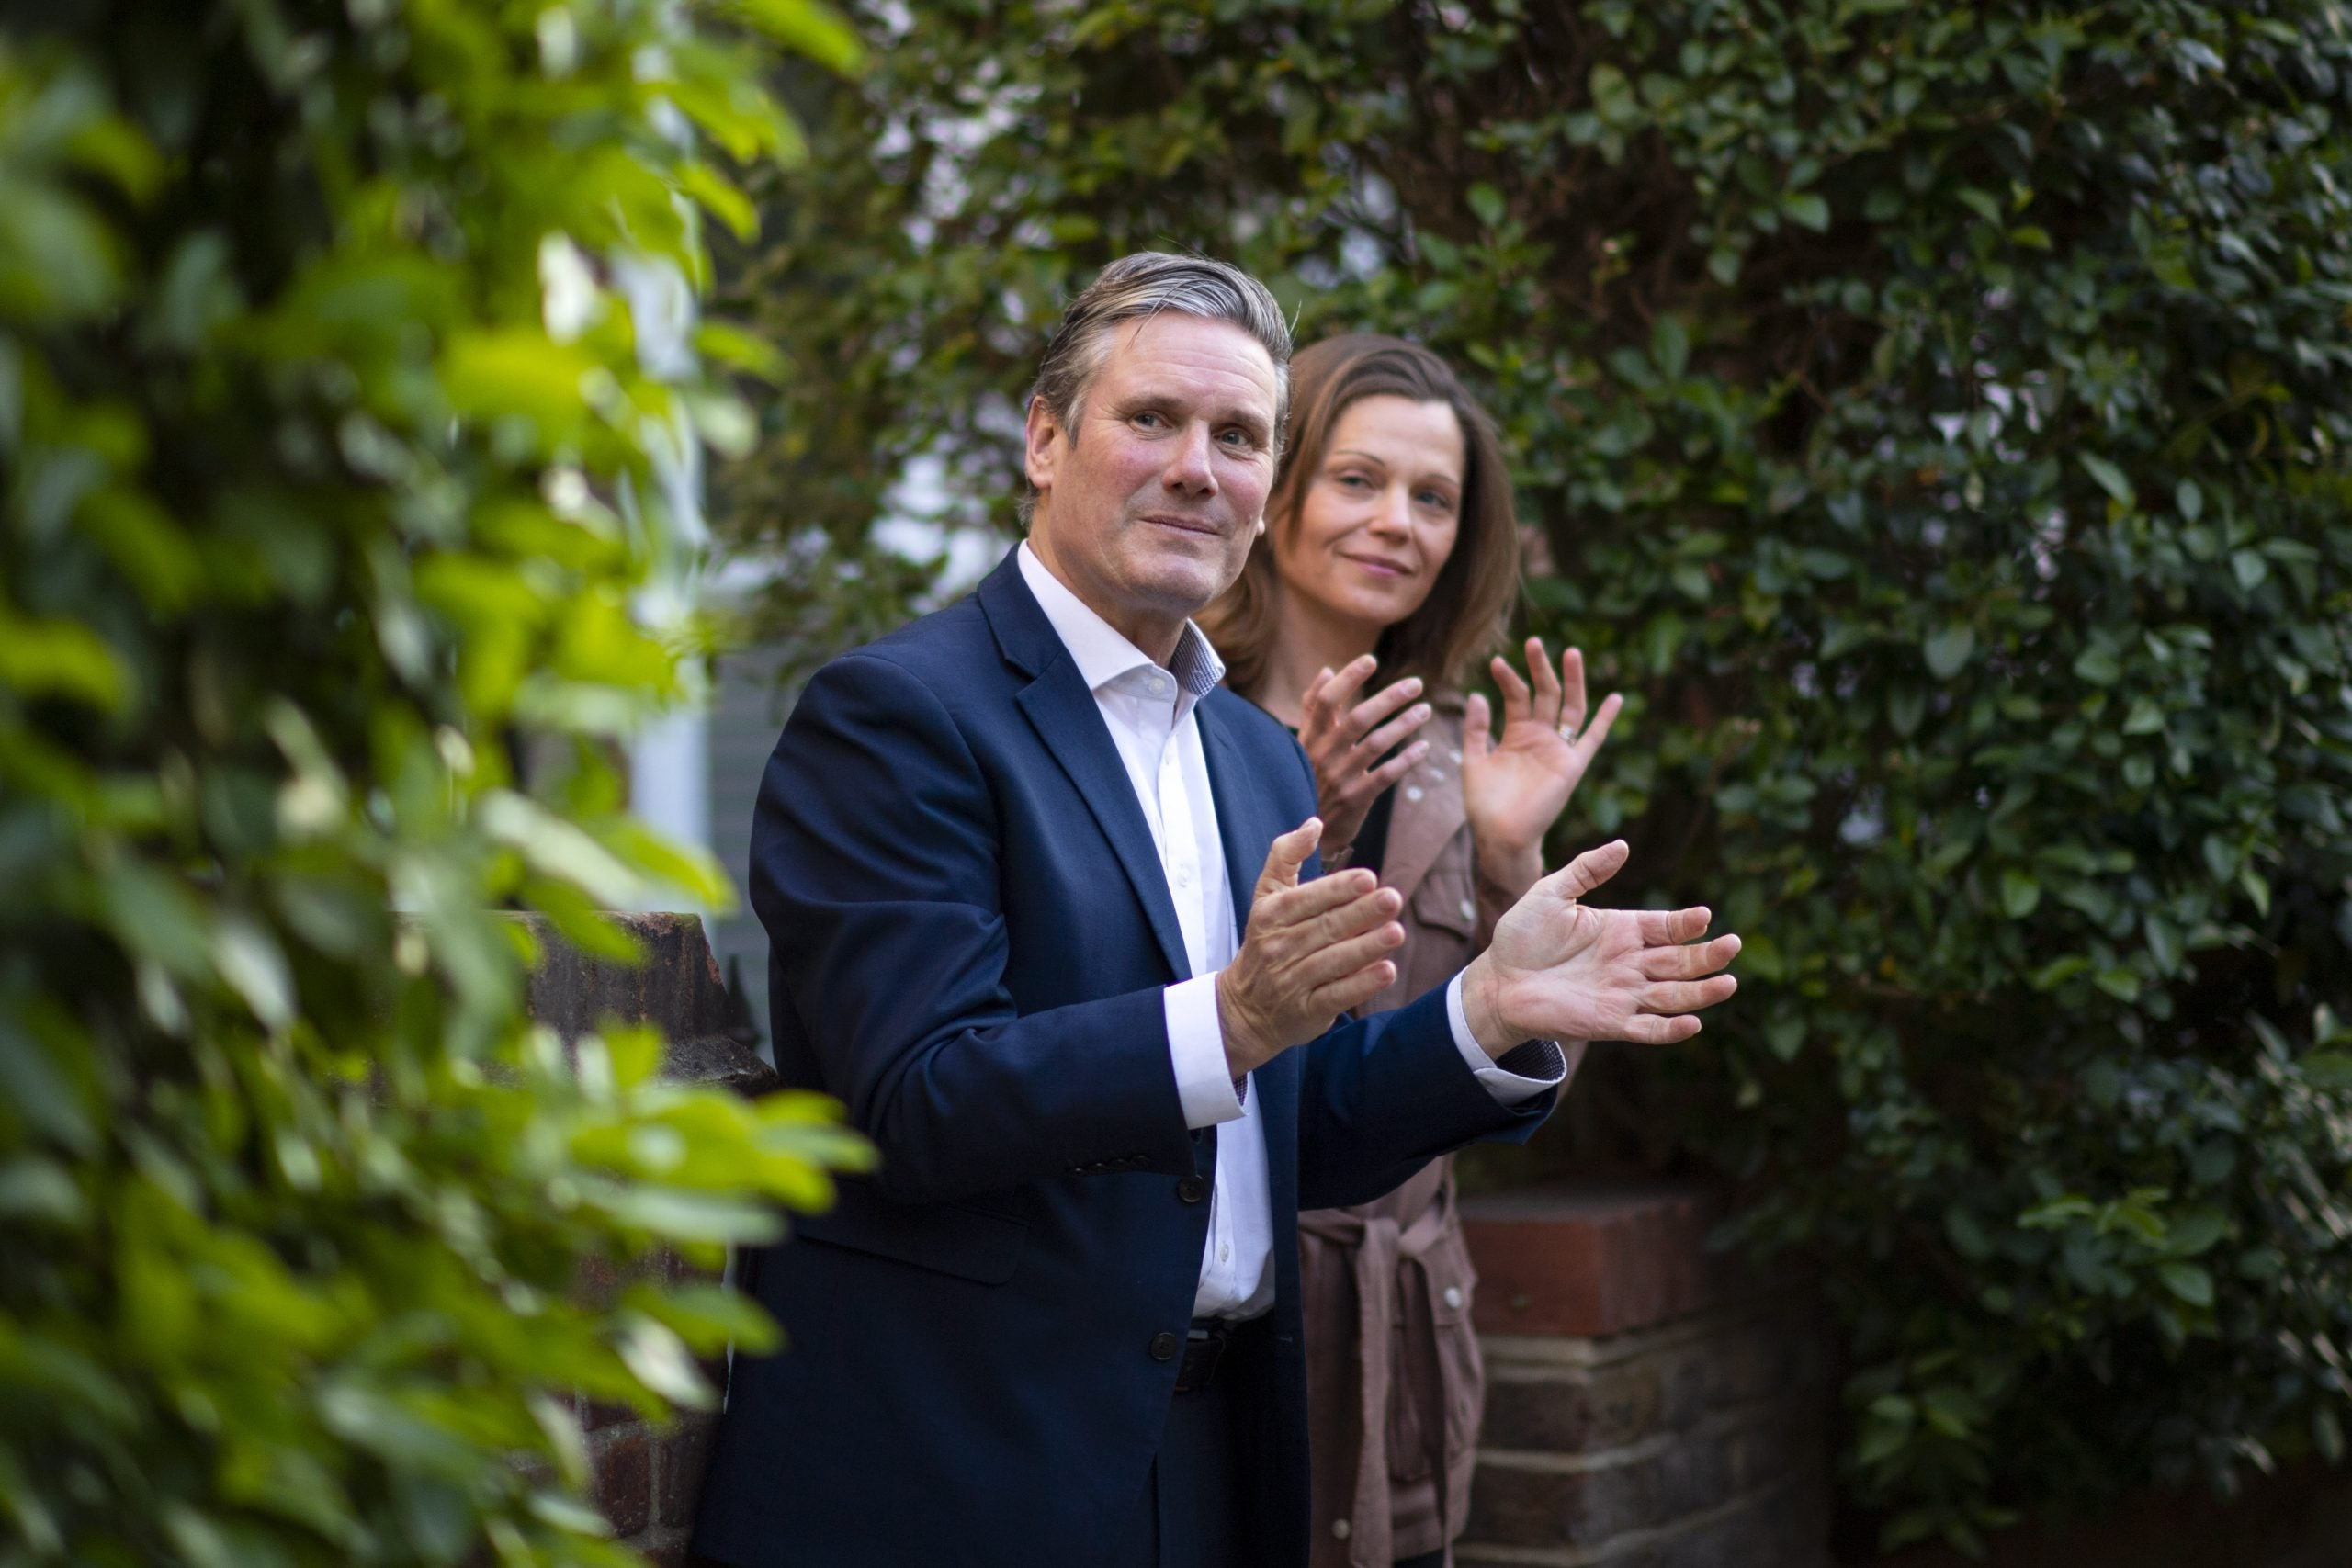 Keir Starmer doesn't choose his battle before he knows he has won – and he has the Tories worried